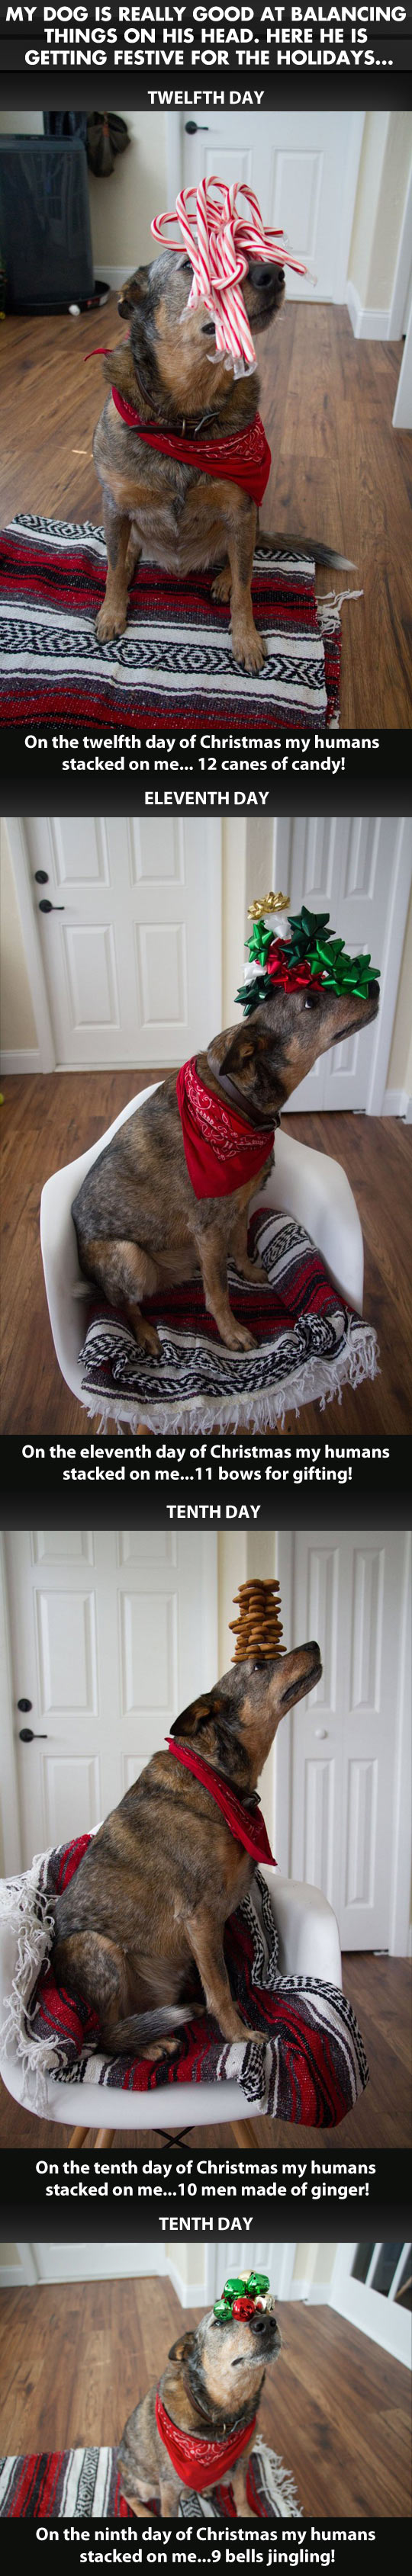 The Christmas spirit is strong with this one…